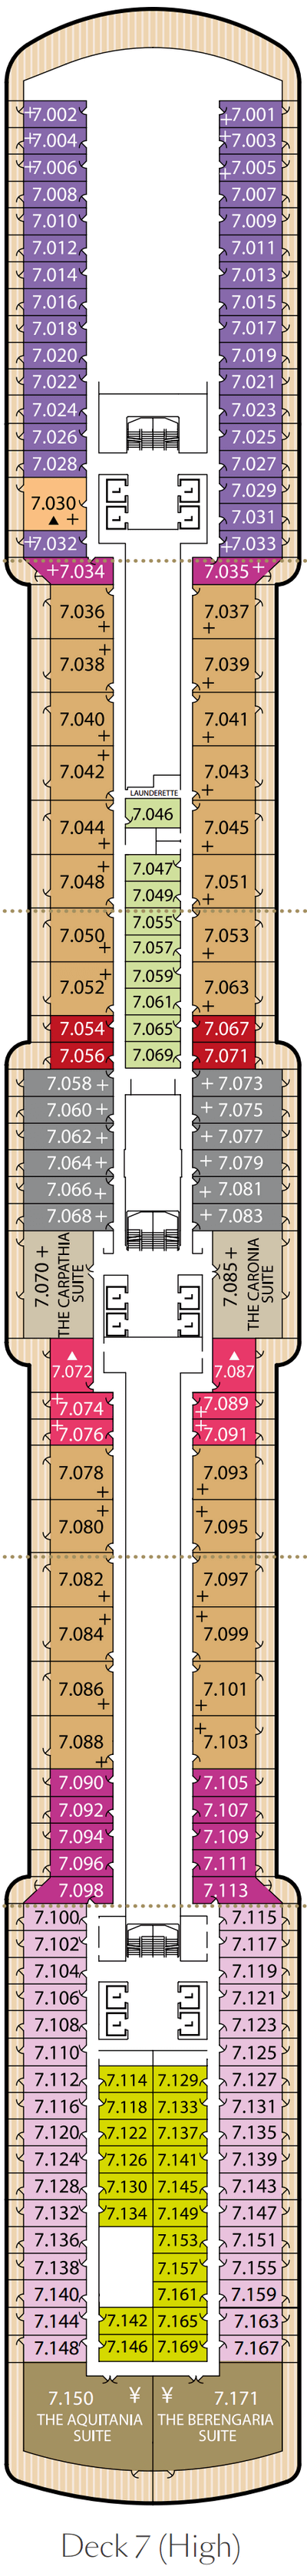 Queen Victoria Deck 7 layout